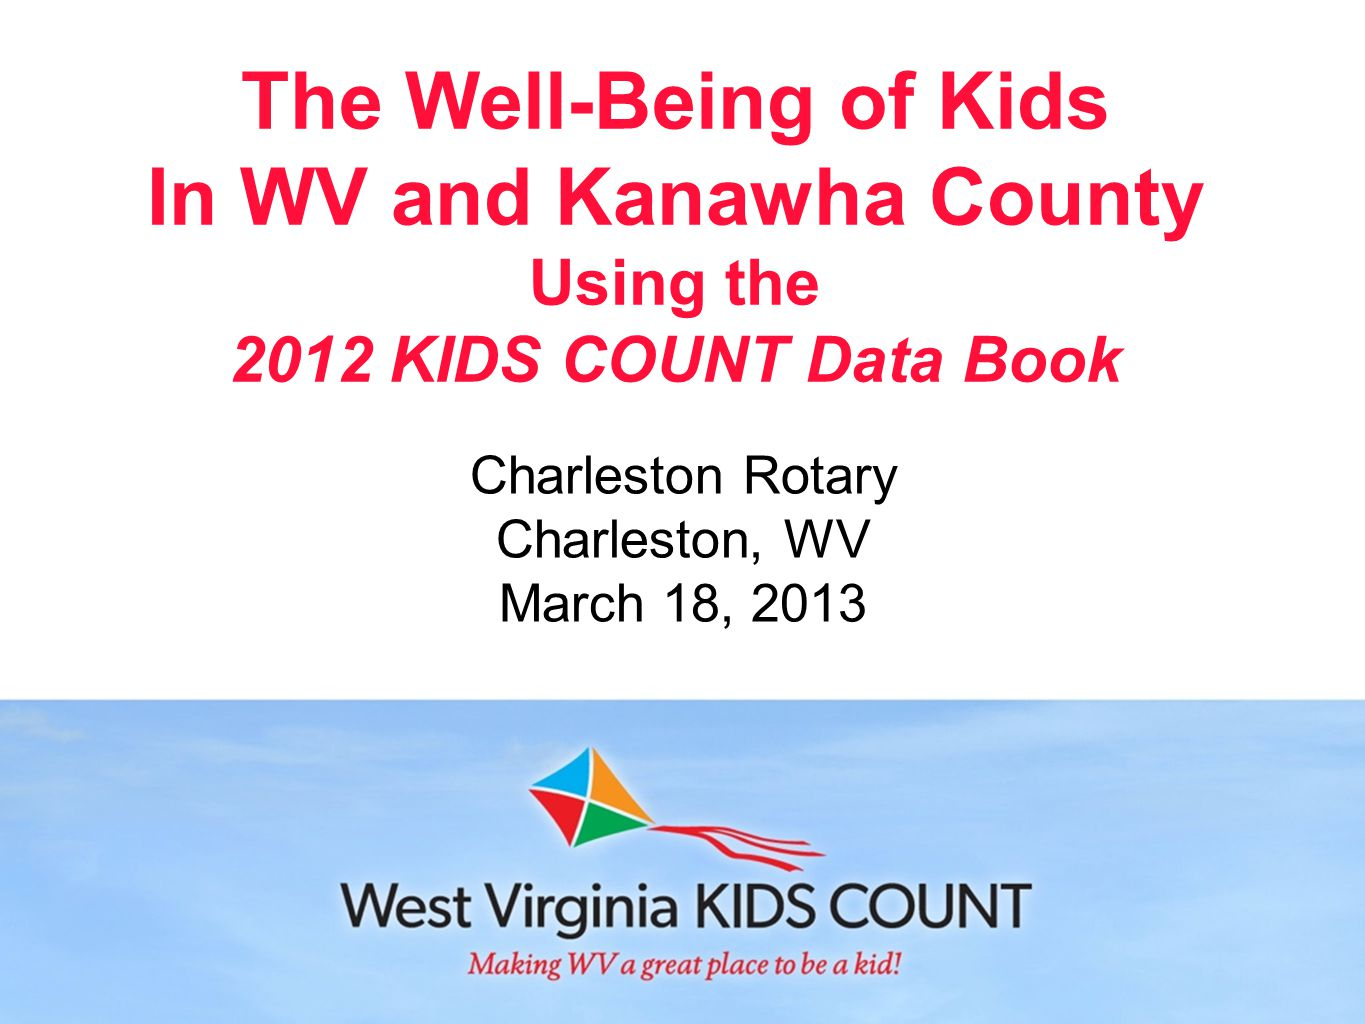 Data Center Mobile App Access KIDS COUNT data quickly and easily, anytime, anywhere.